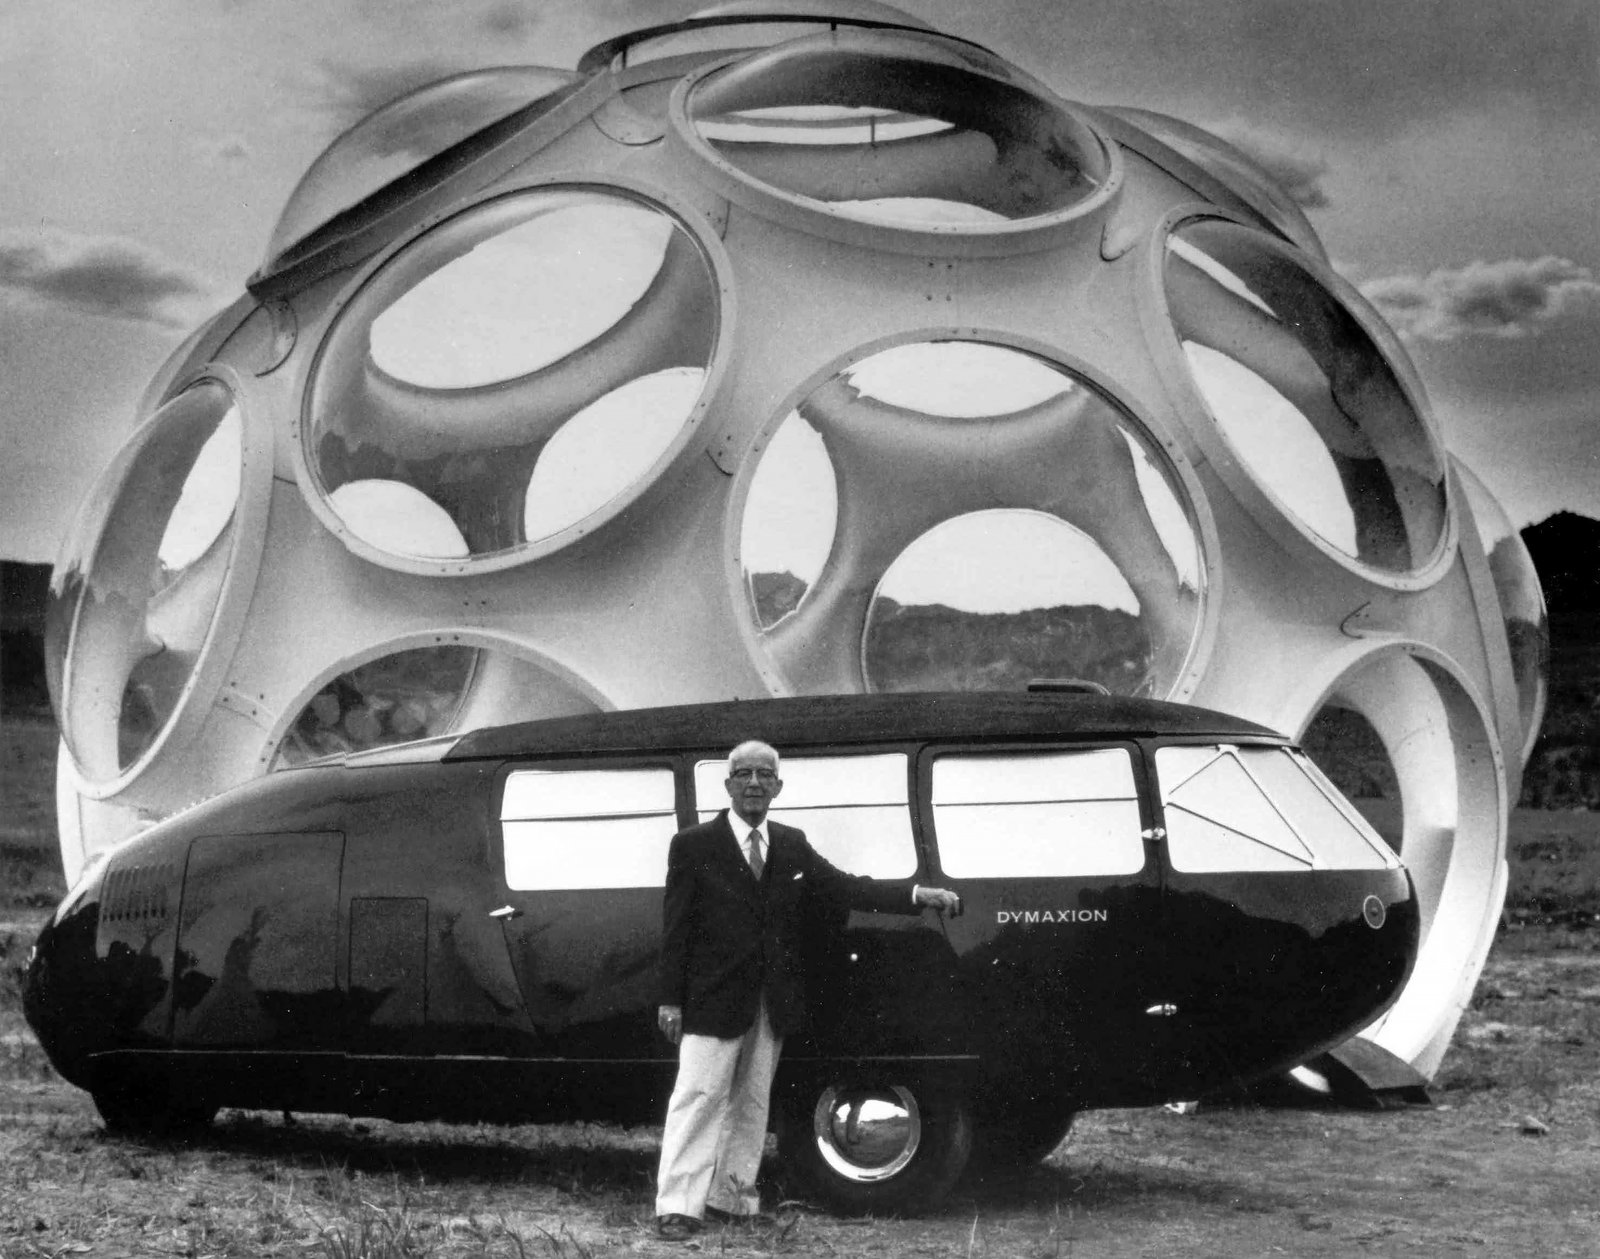 Buckminster Fuller with his Dymaxion Can and Fly Eye Dome